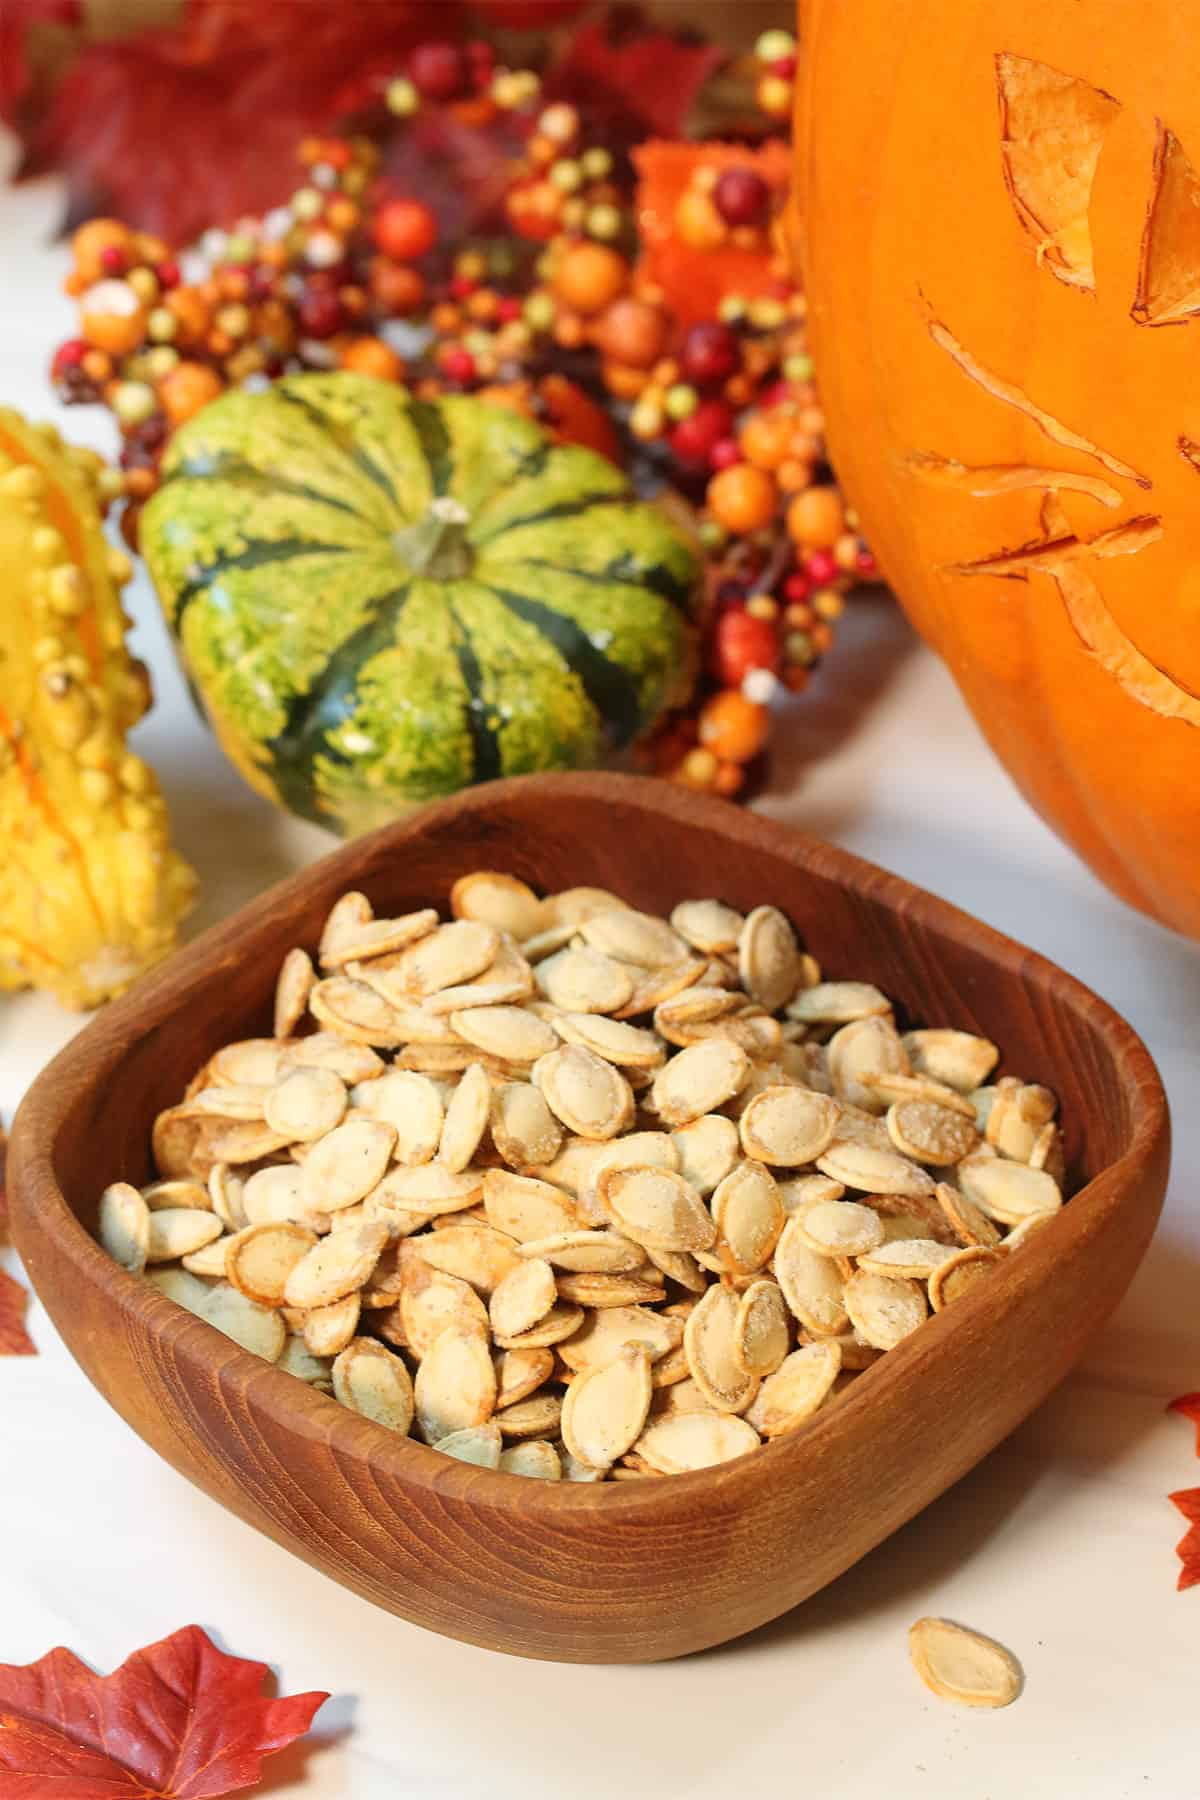 Air fried pumpkin seeds in wooden bowl with colorful gourds in back.